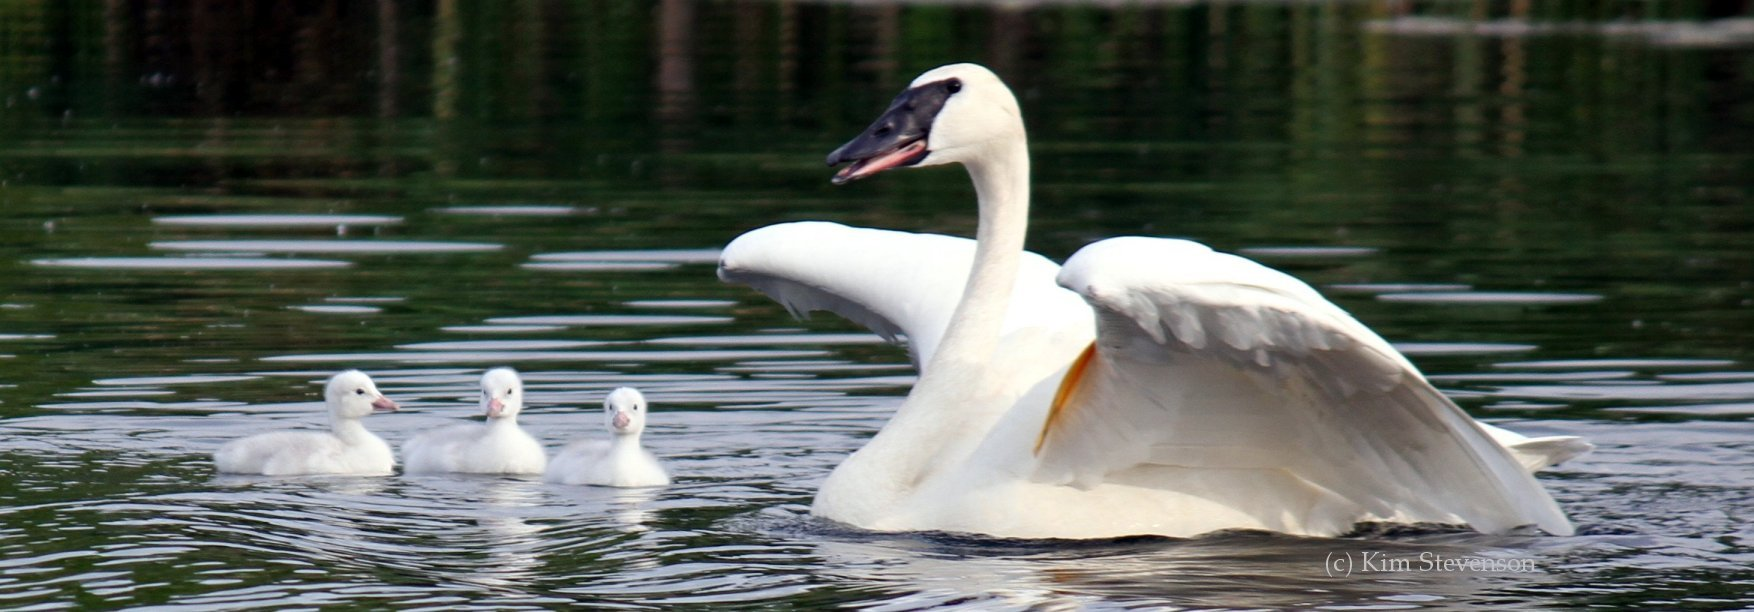 Your Adopt a Swan donation helps protect swan health and habitats